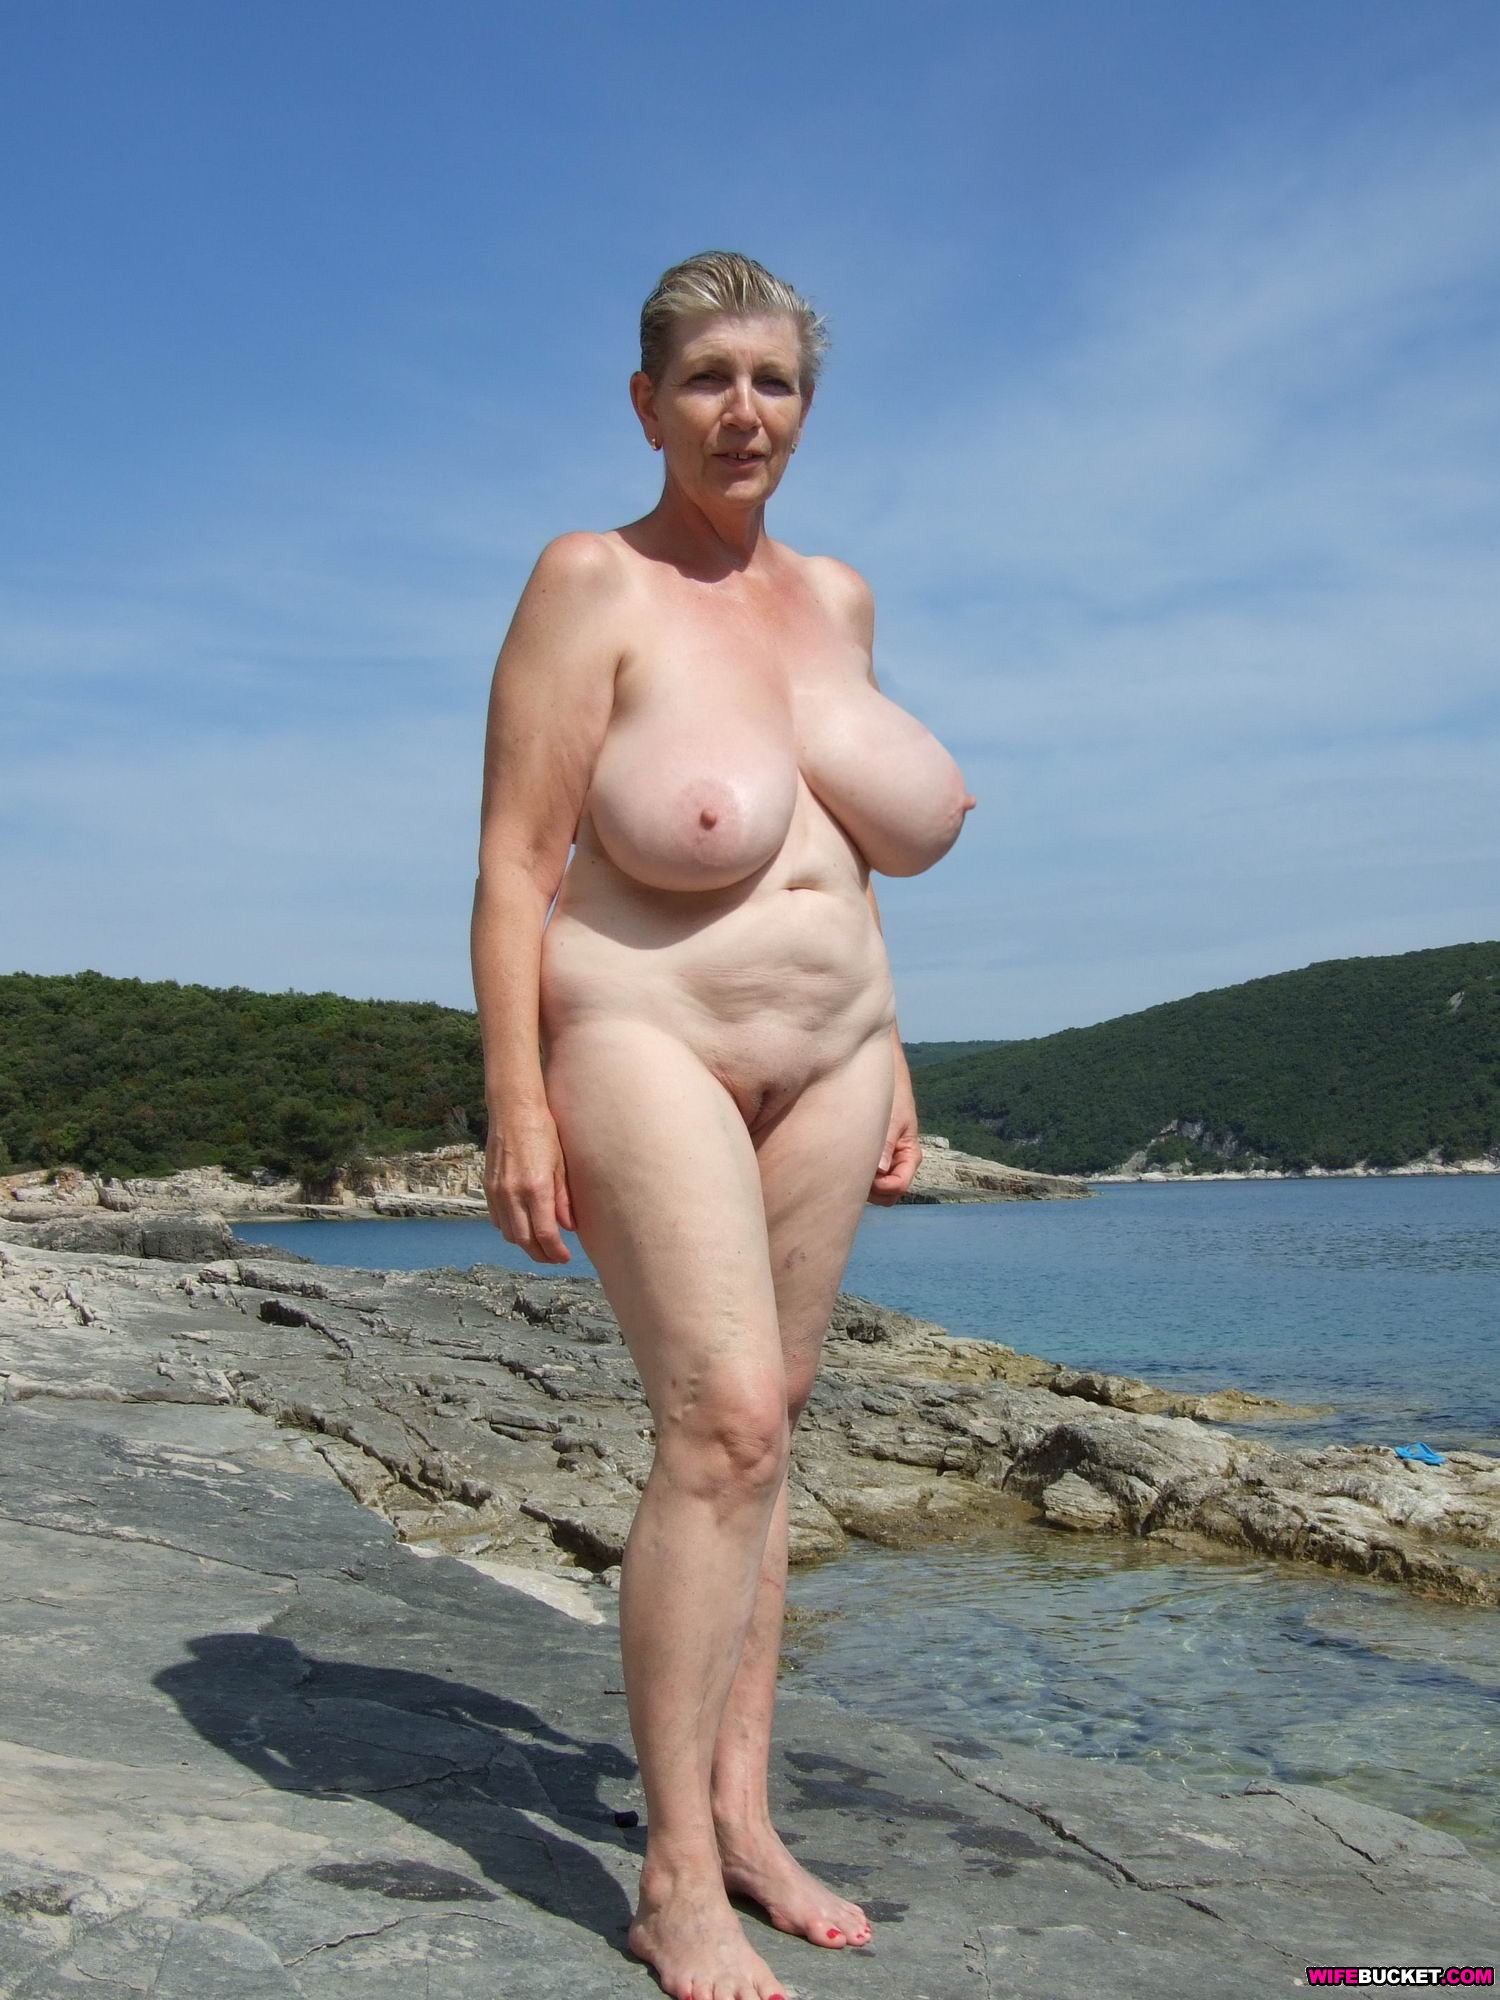 from Marcelo big boobs granny naked beach